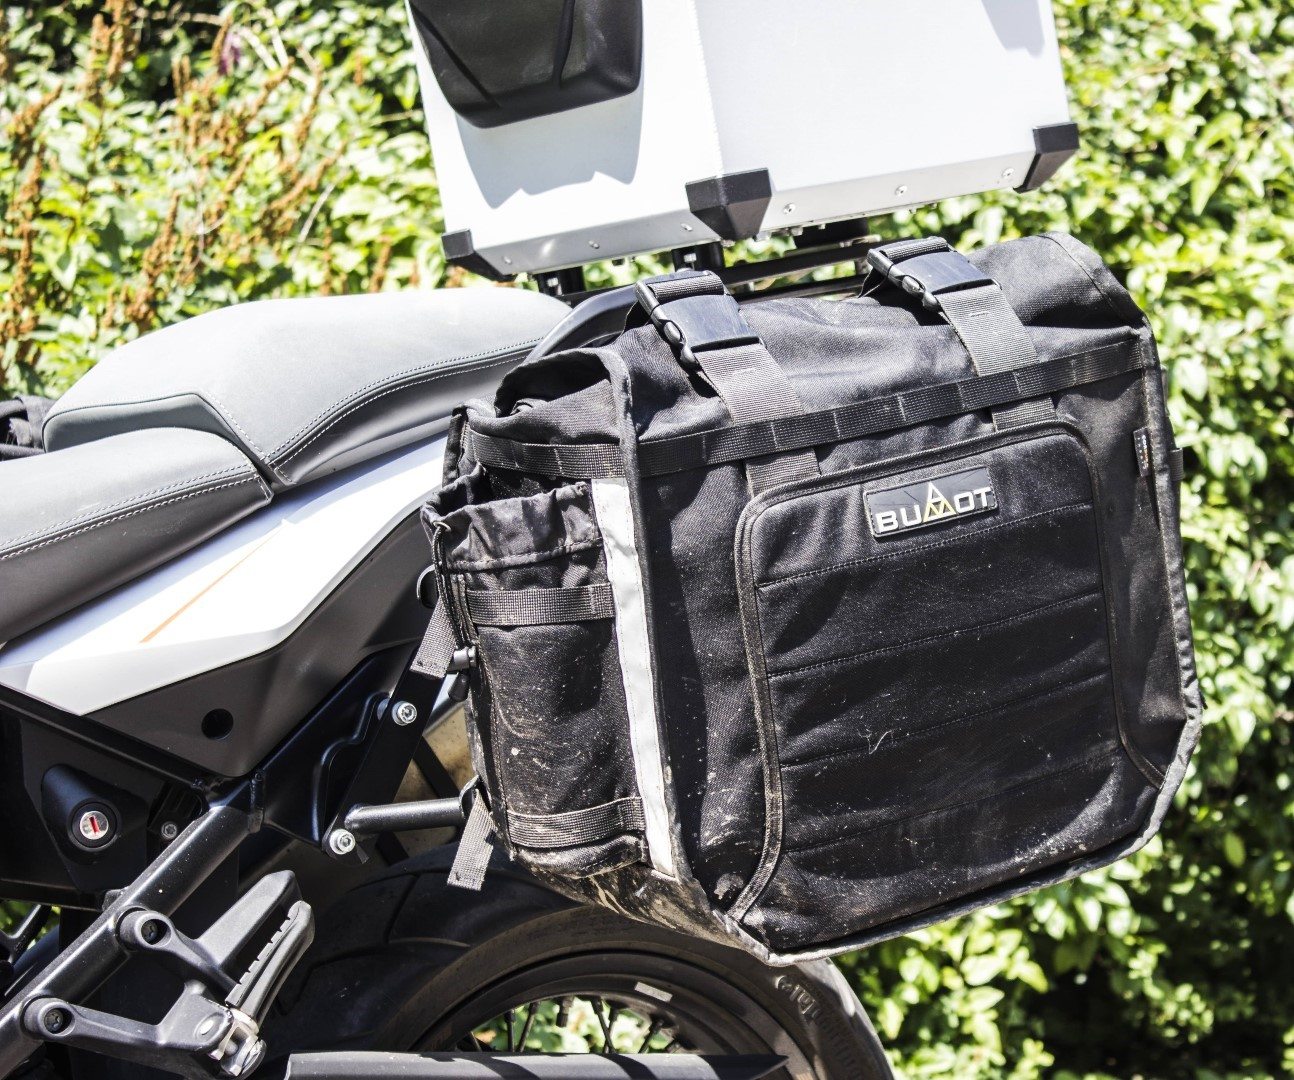 Xtremada soft panniers  for BUMOT pannier racks